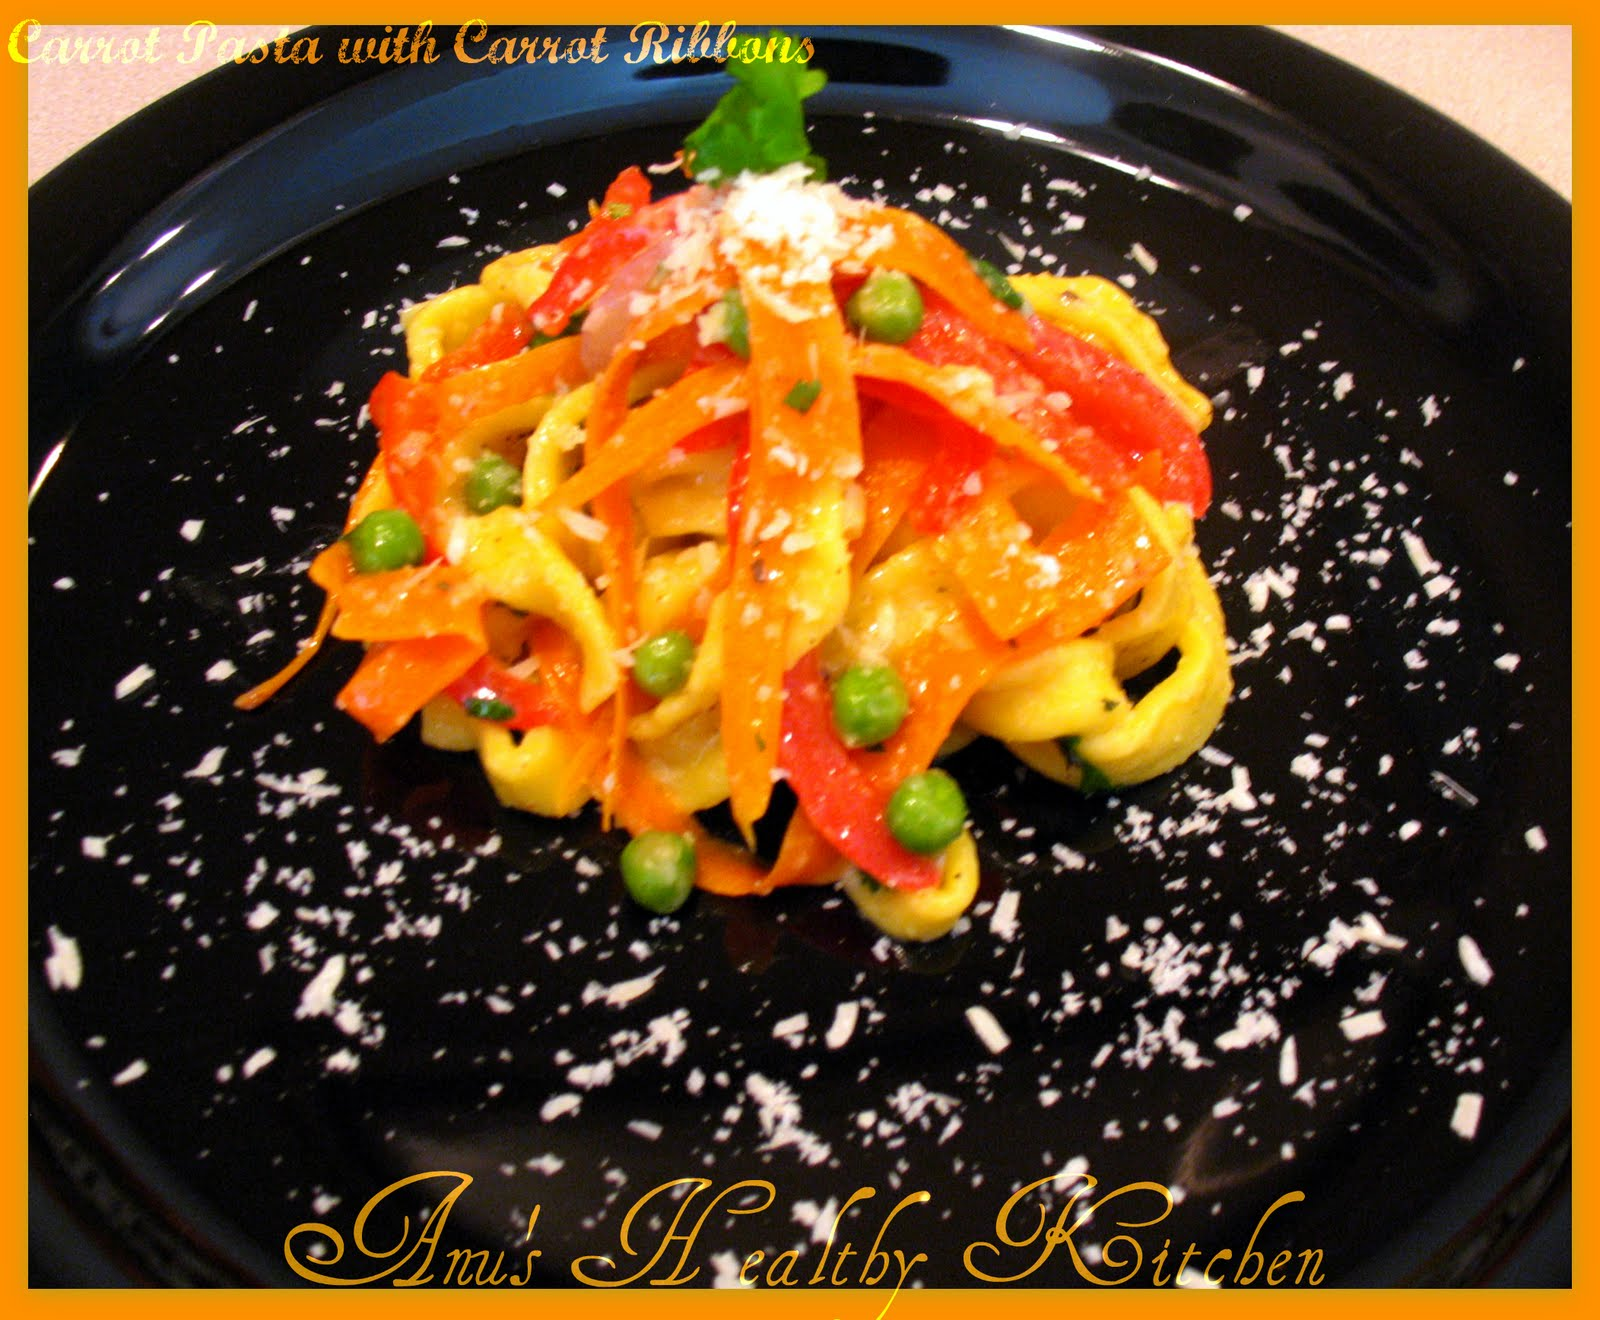 Carrot Pasta with Carrot Ribbons